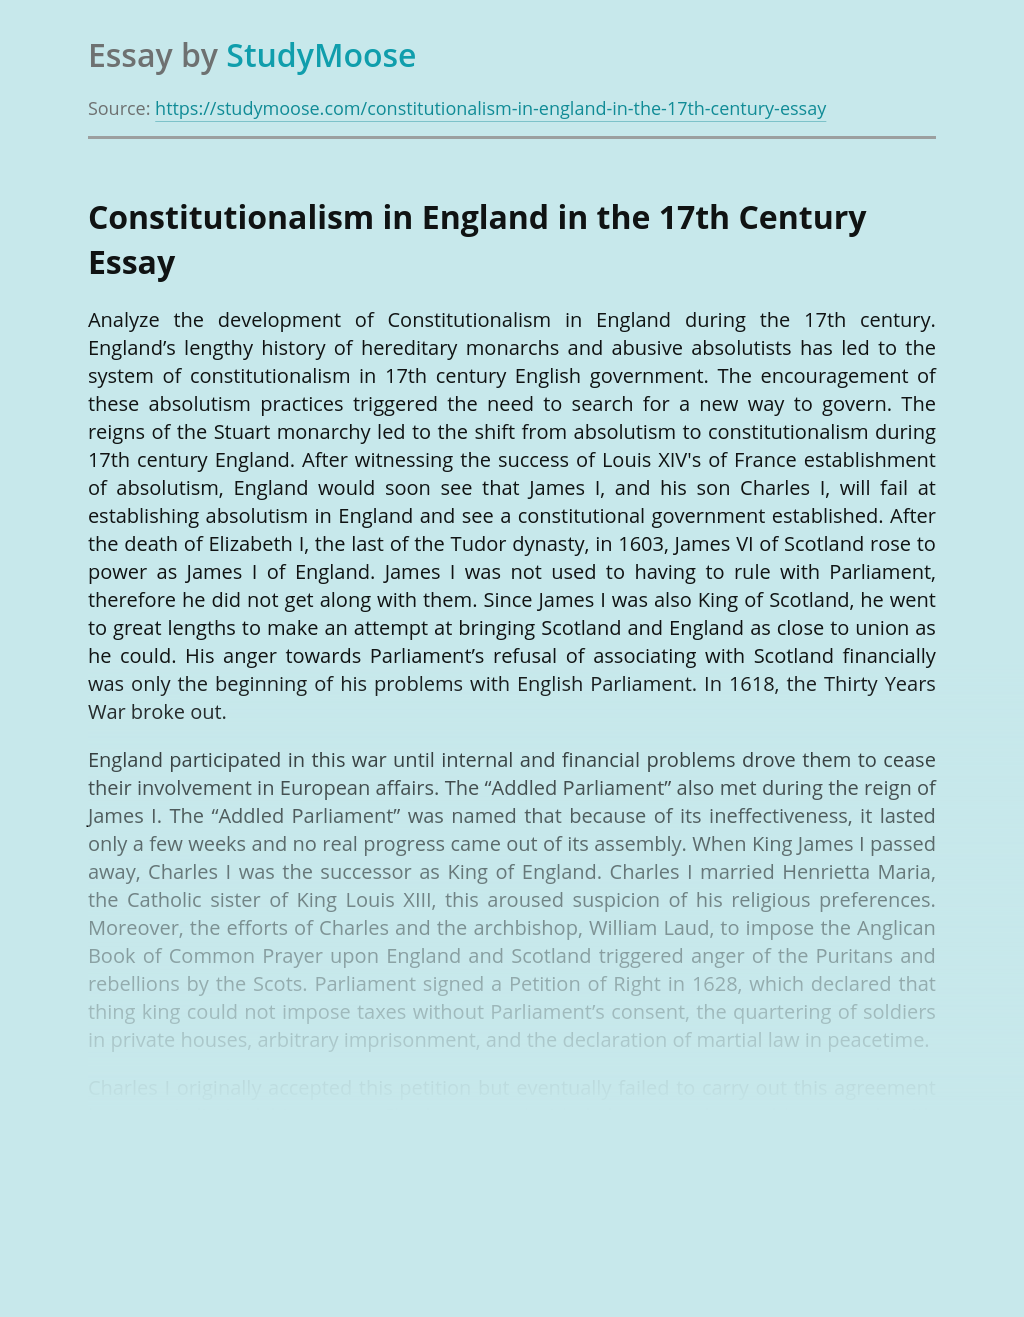 Constitutionalism in England in the 17th Century